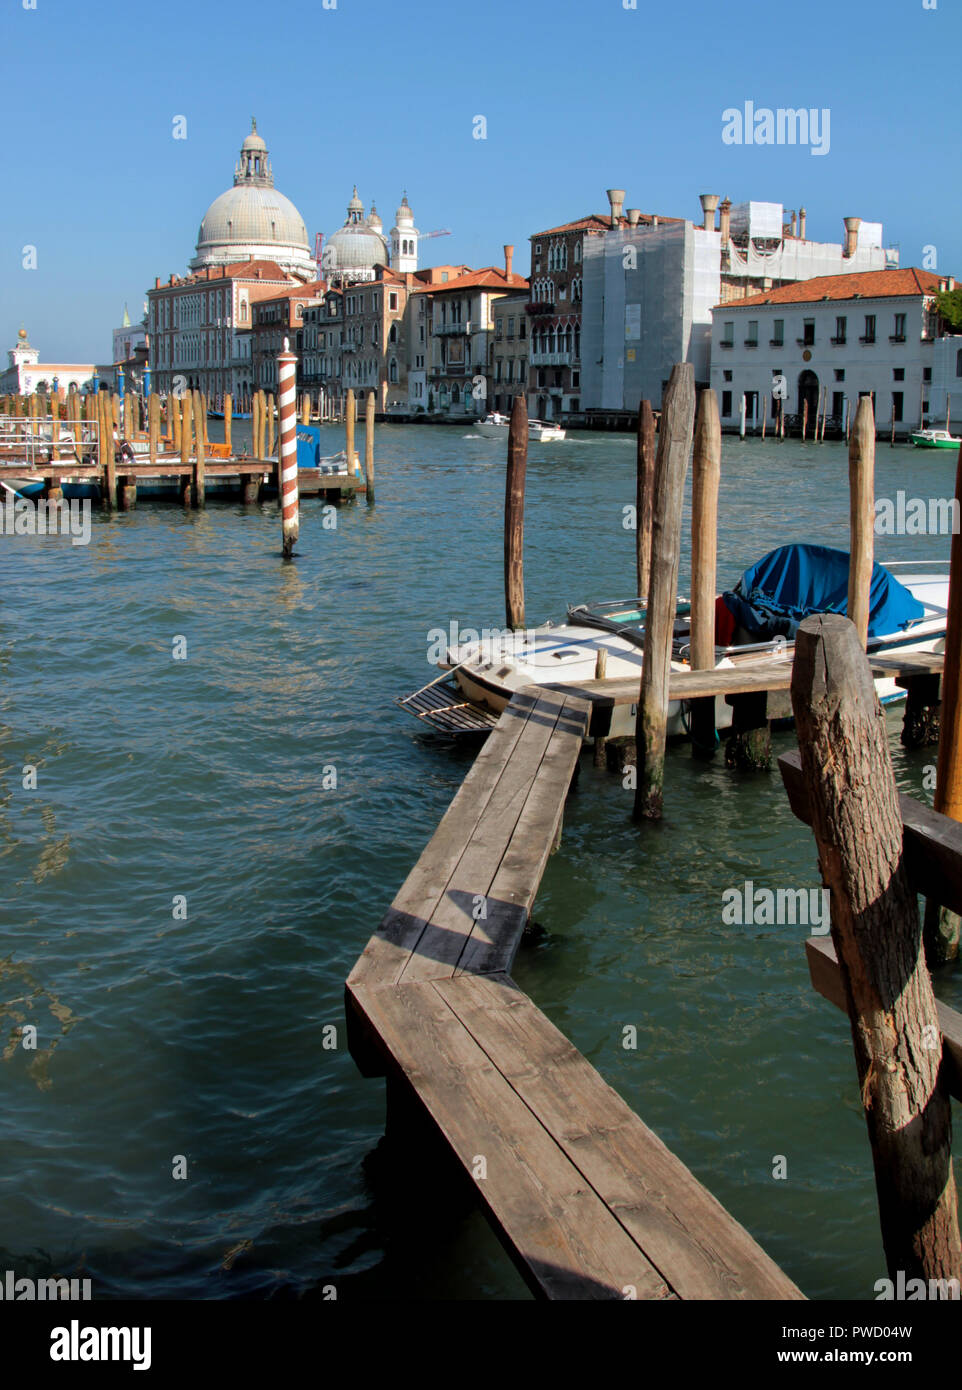 Walking about Venice can be tricky when faced with just a few planks of wood to walk on in most places. - Stock Image